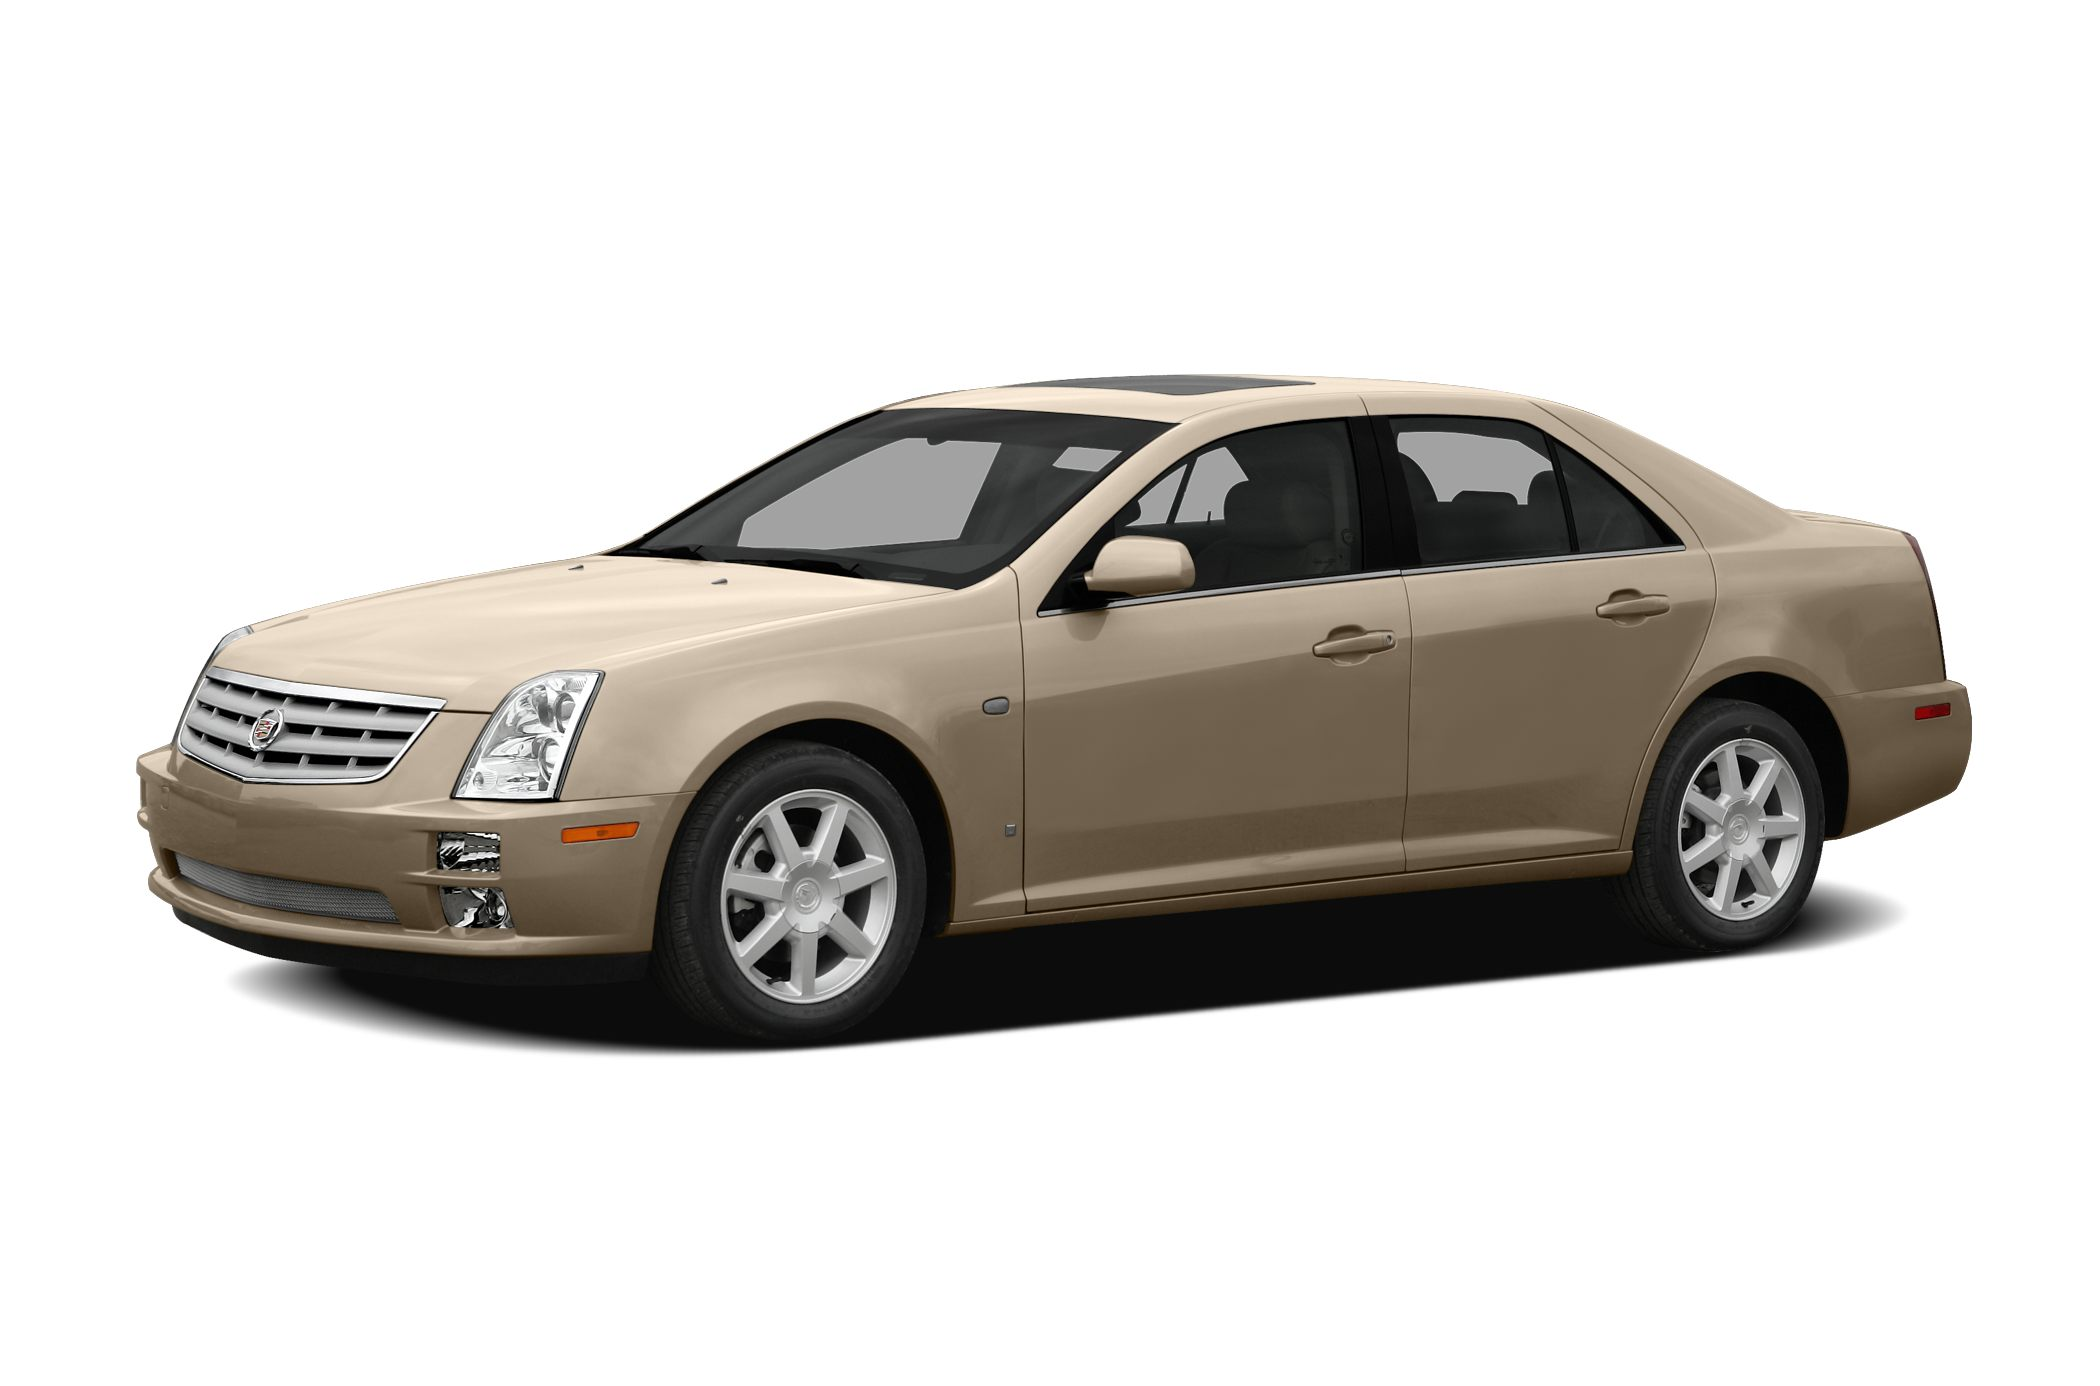 2007 Cadillac STS V6 Sedan for sale in Las Cruces for $16,000 with 51,247 miles.